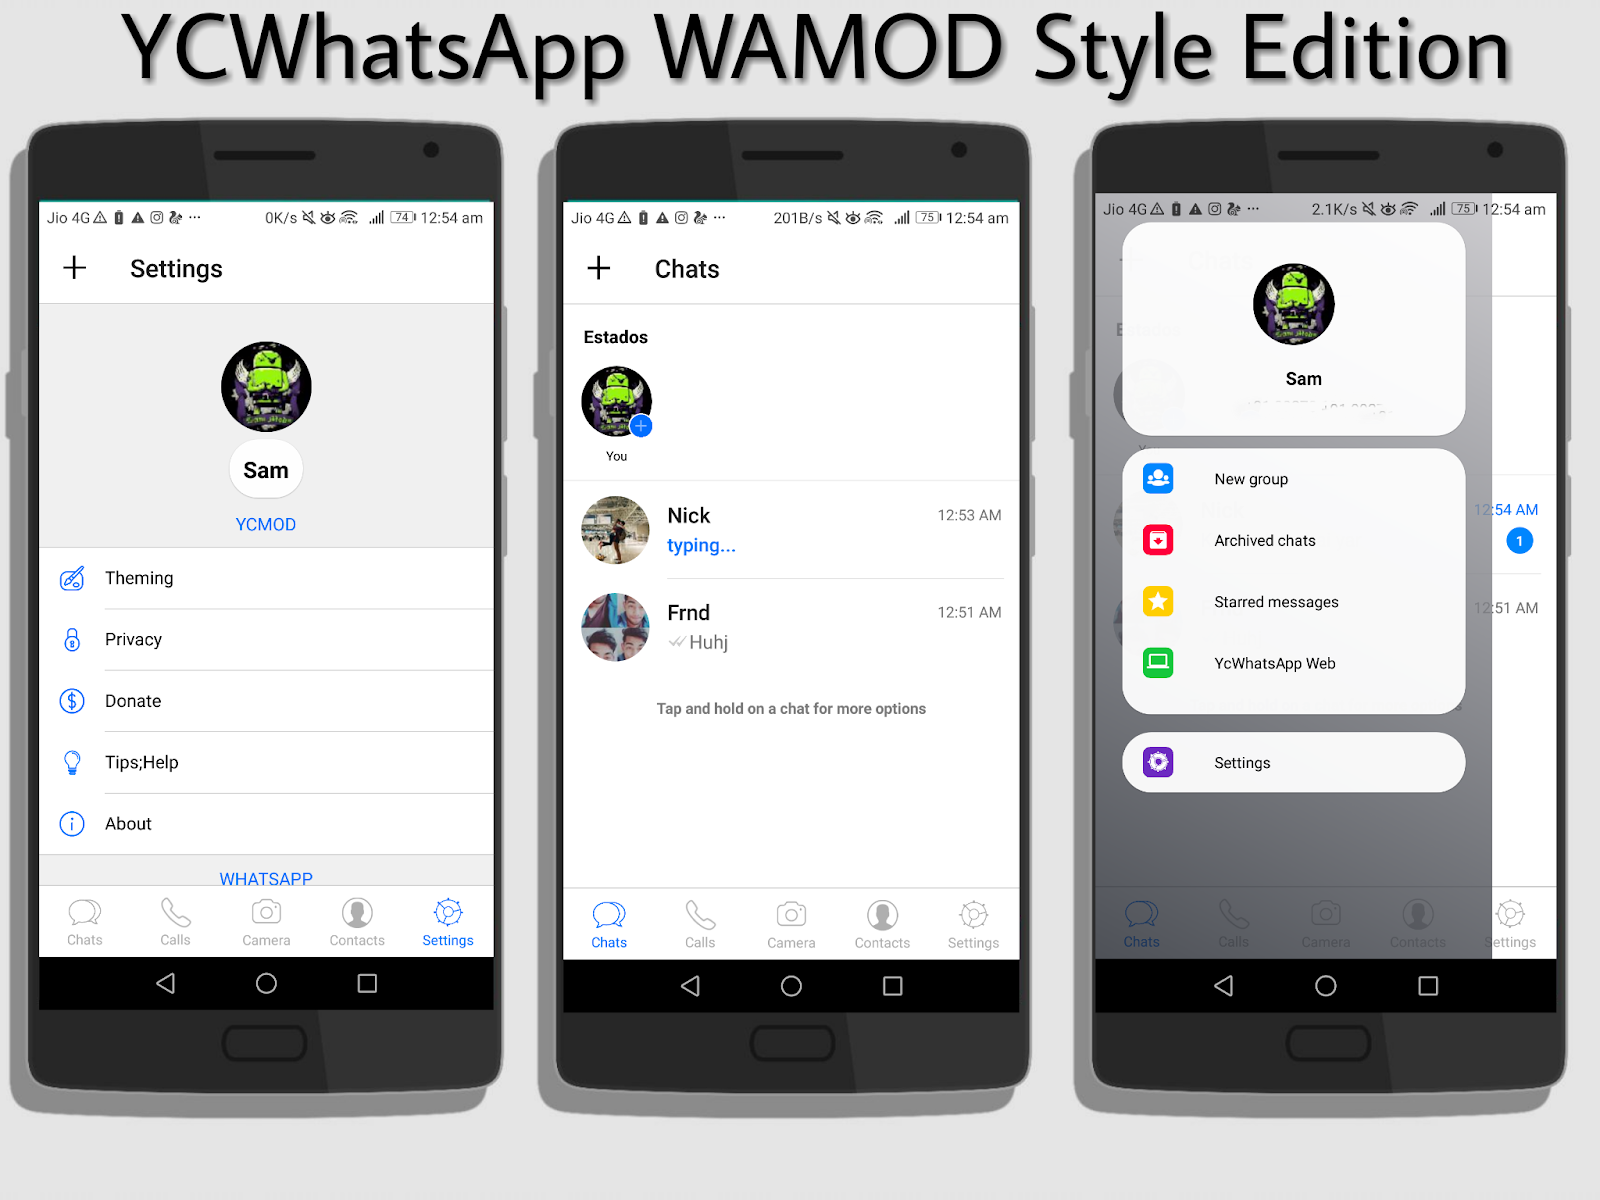 YcWhatsApp APK: Download And Get iPhone WhatsApp Like Feel On Android